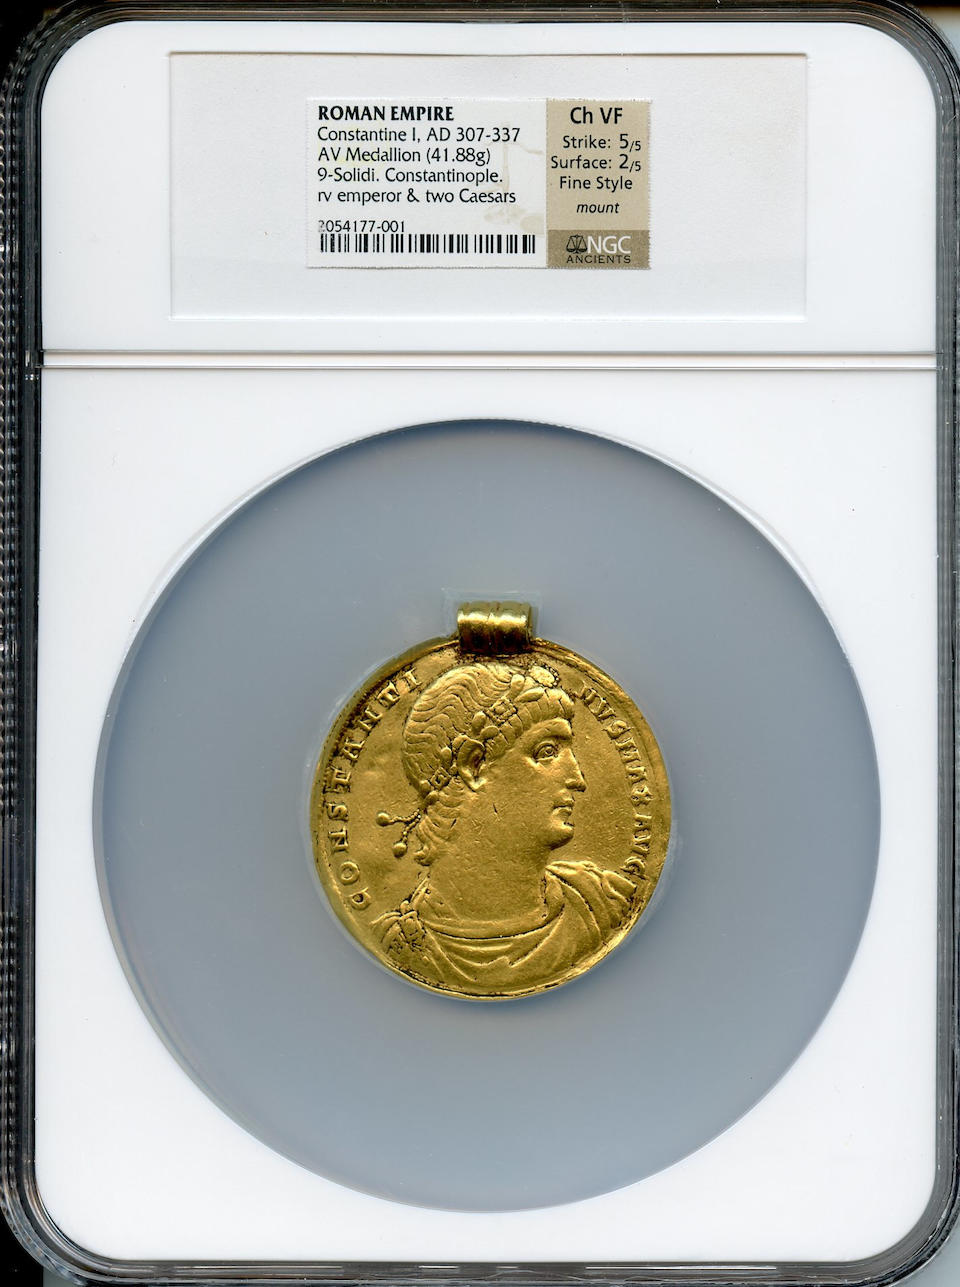 Roman Empire, Constantine I, The Great, Gold Medallion of 9 Solidi, 307-337 A.D. Choice VF NGC